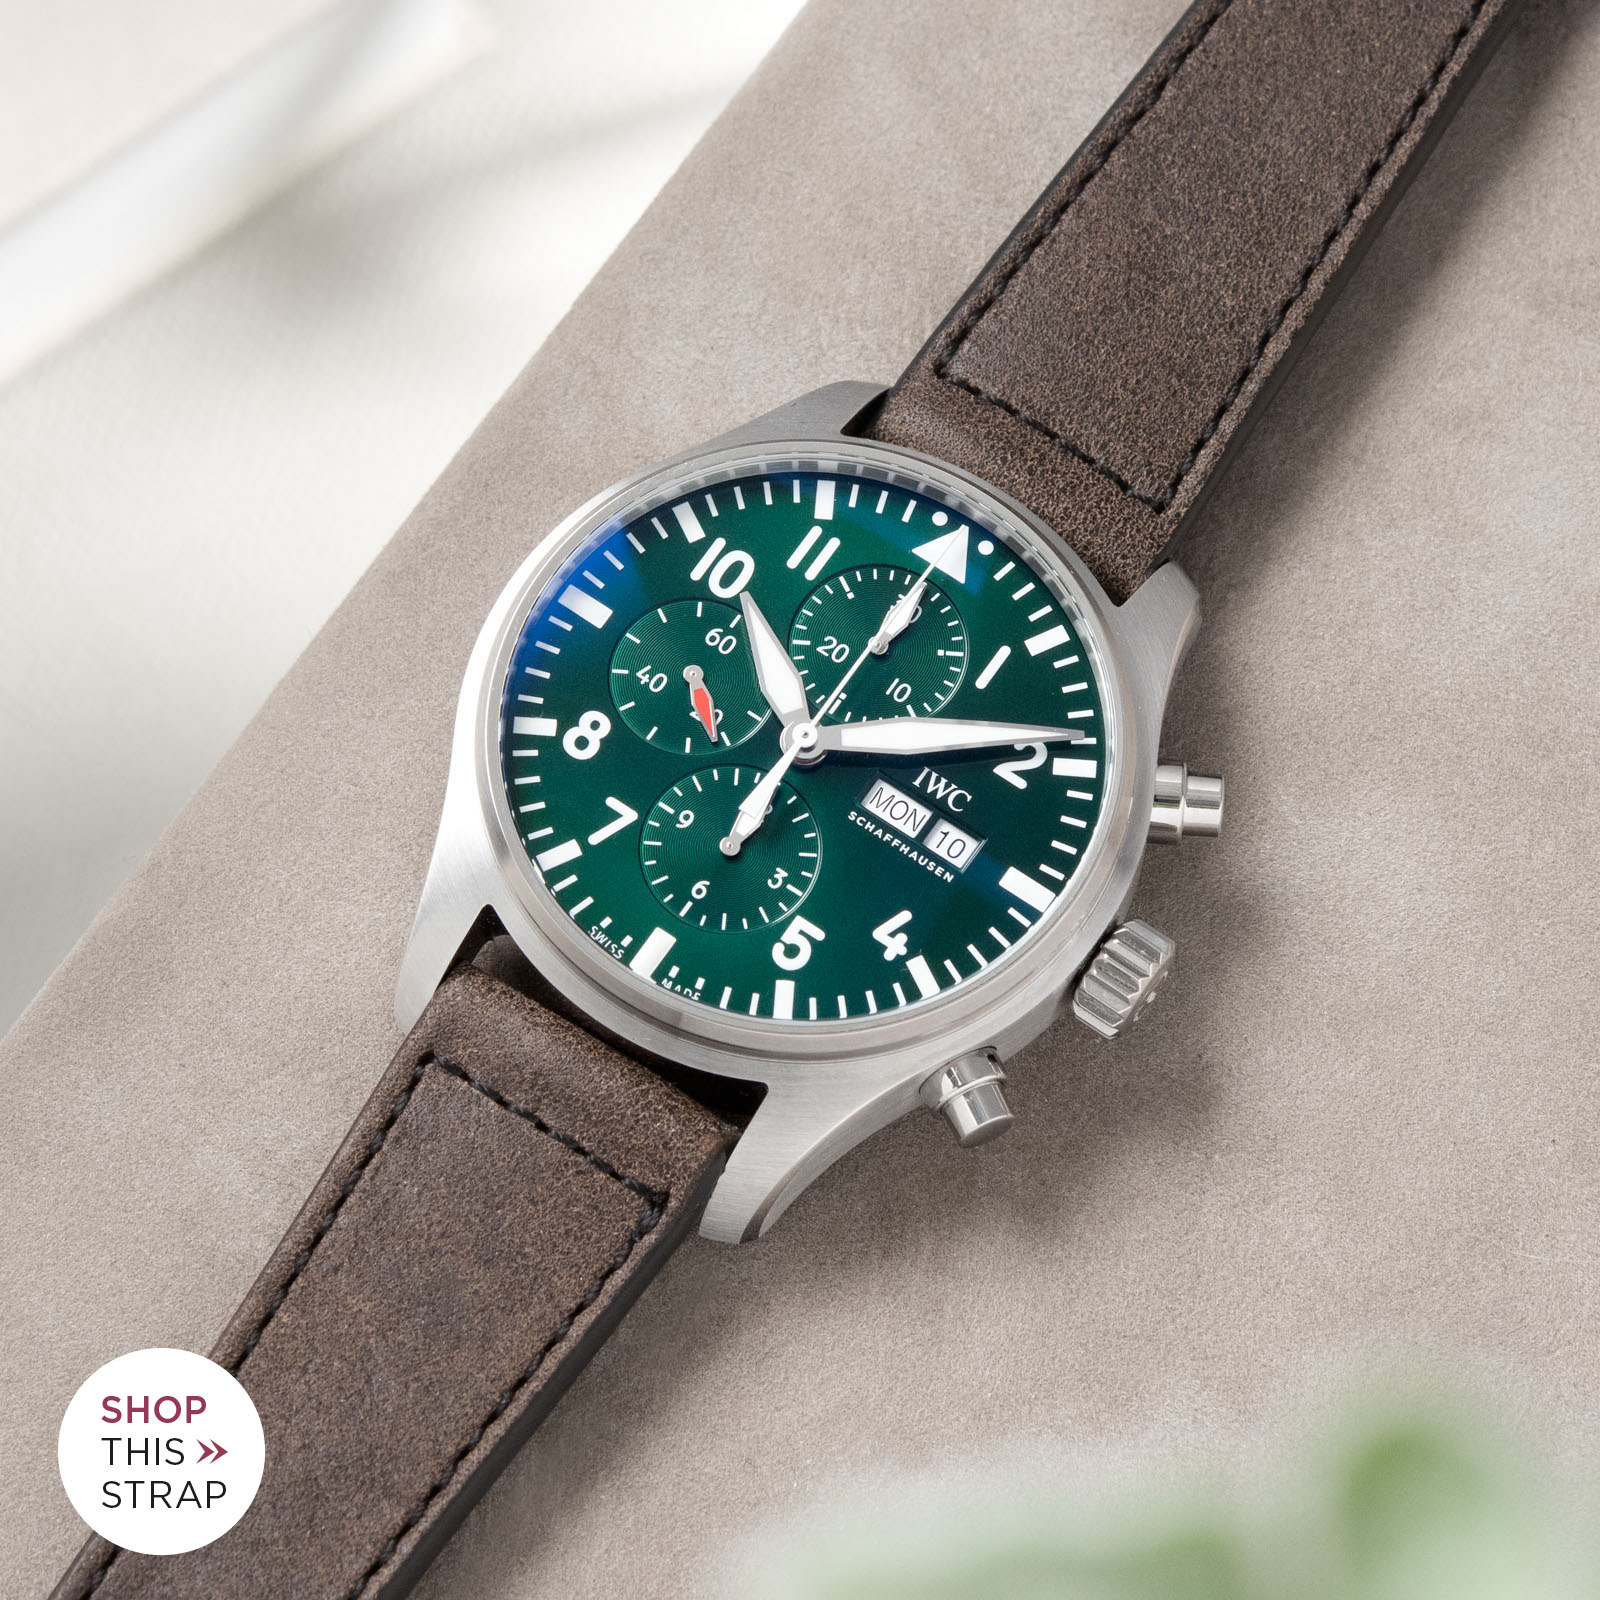 Bulang and Sons_Strapguide_IWC Pilots Watch Chronograph Spitfire_Ravello Brown Leather Watch Strap